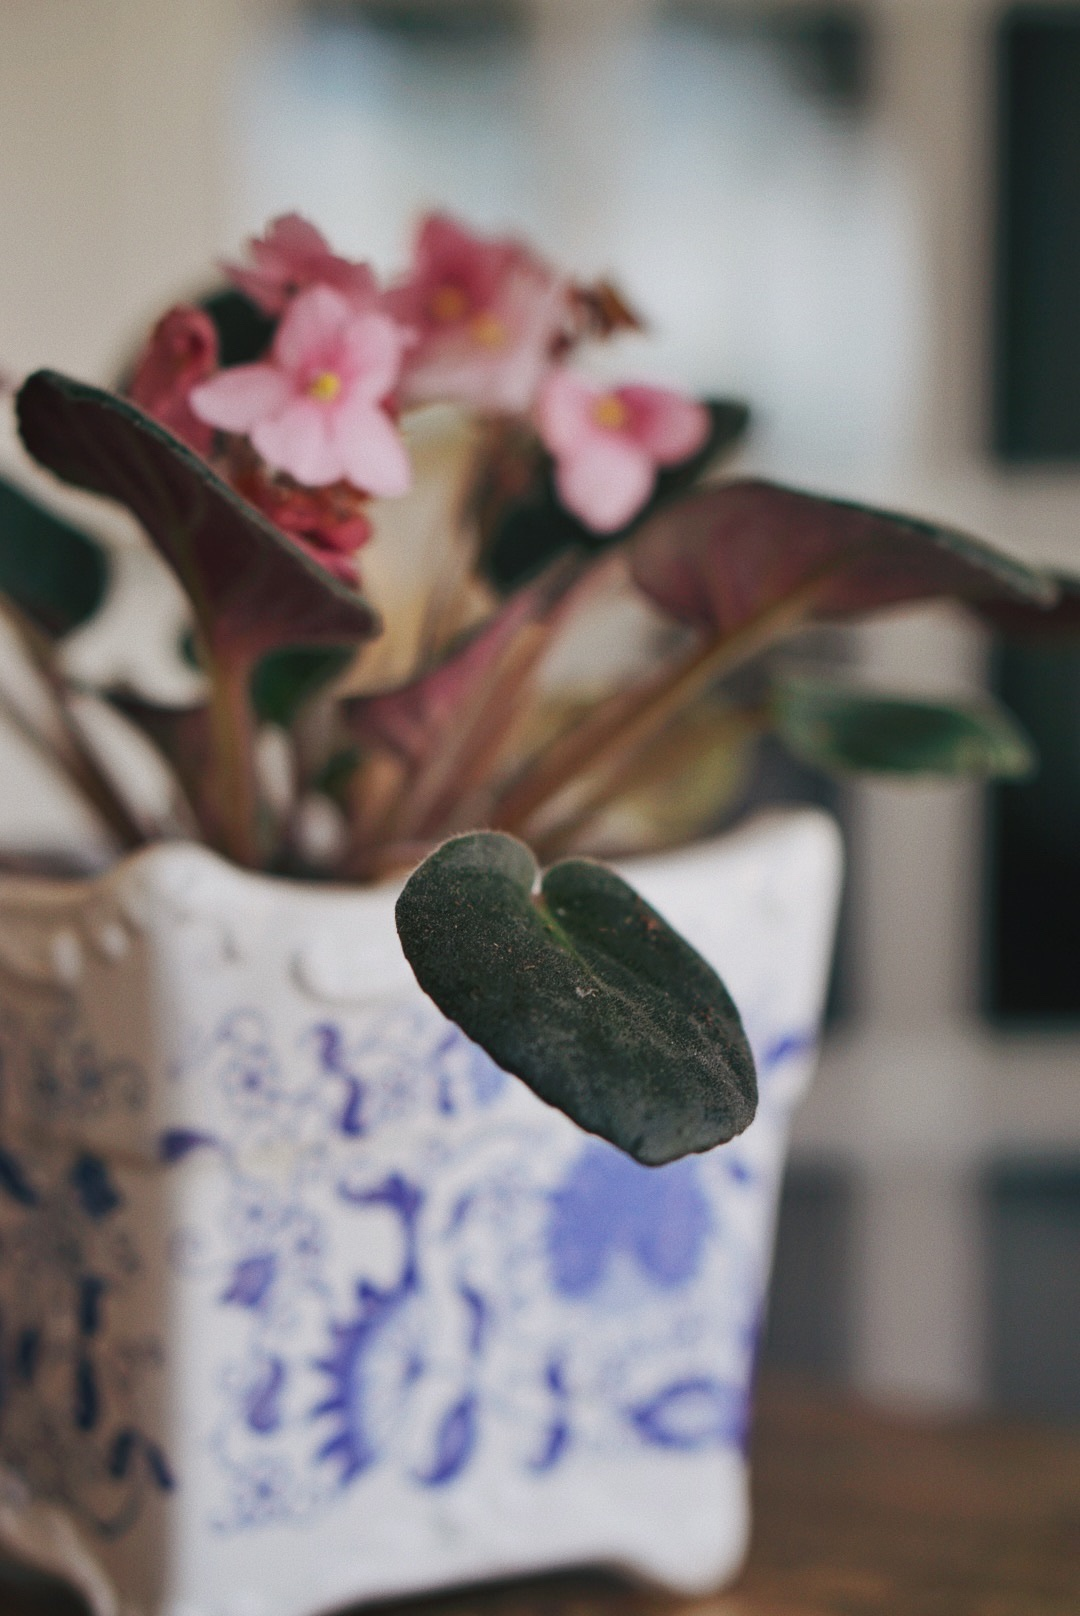 how to keep focused, flowers, house plants, African violets, photography